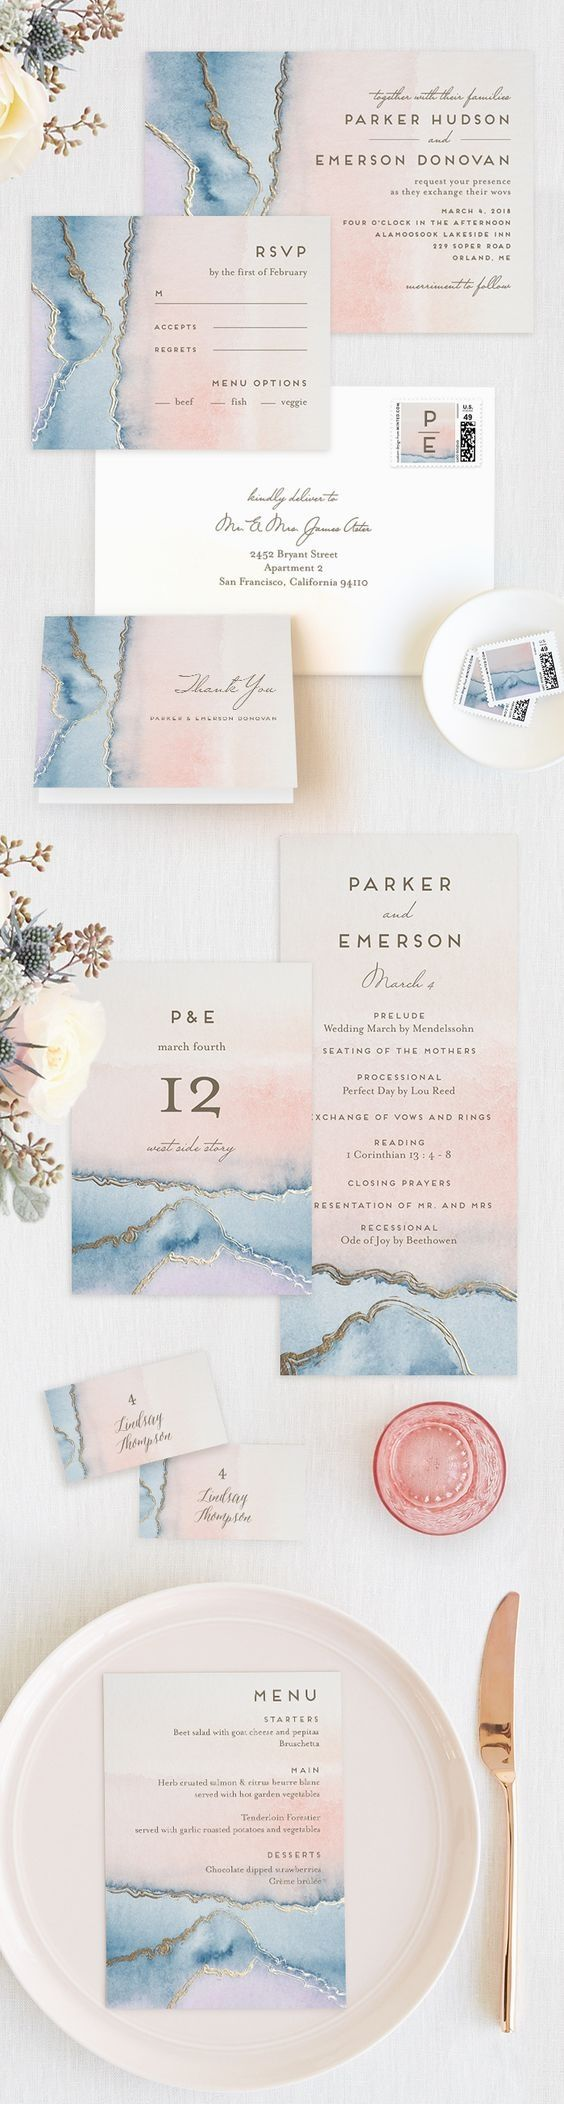 Serenity & Rose Quartz Wedding Invitations || Wedding Stationery || Wedding Invitation Suites